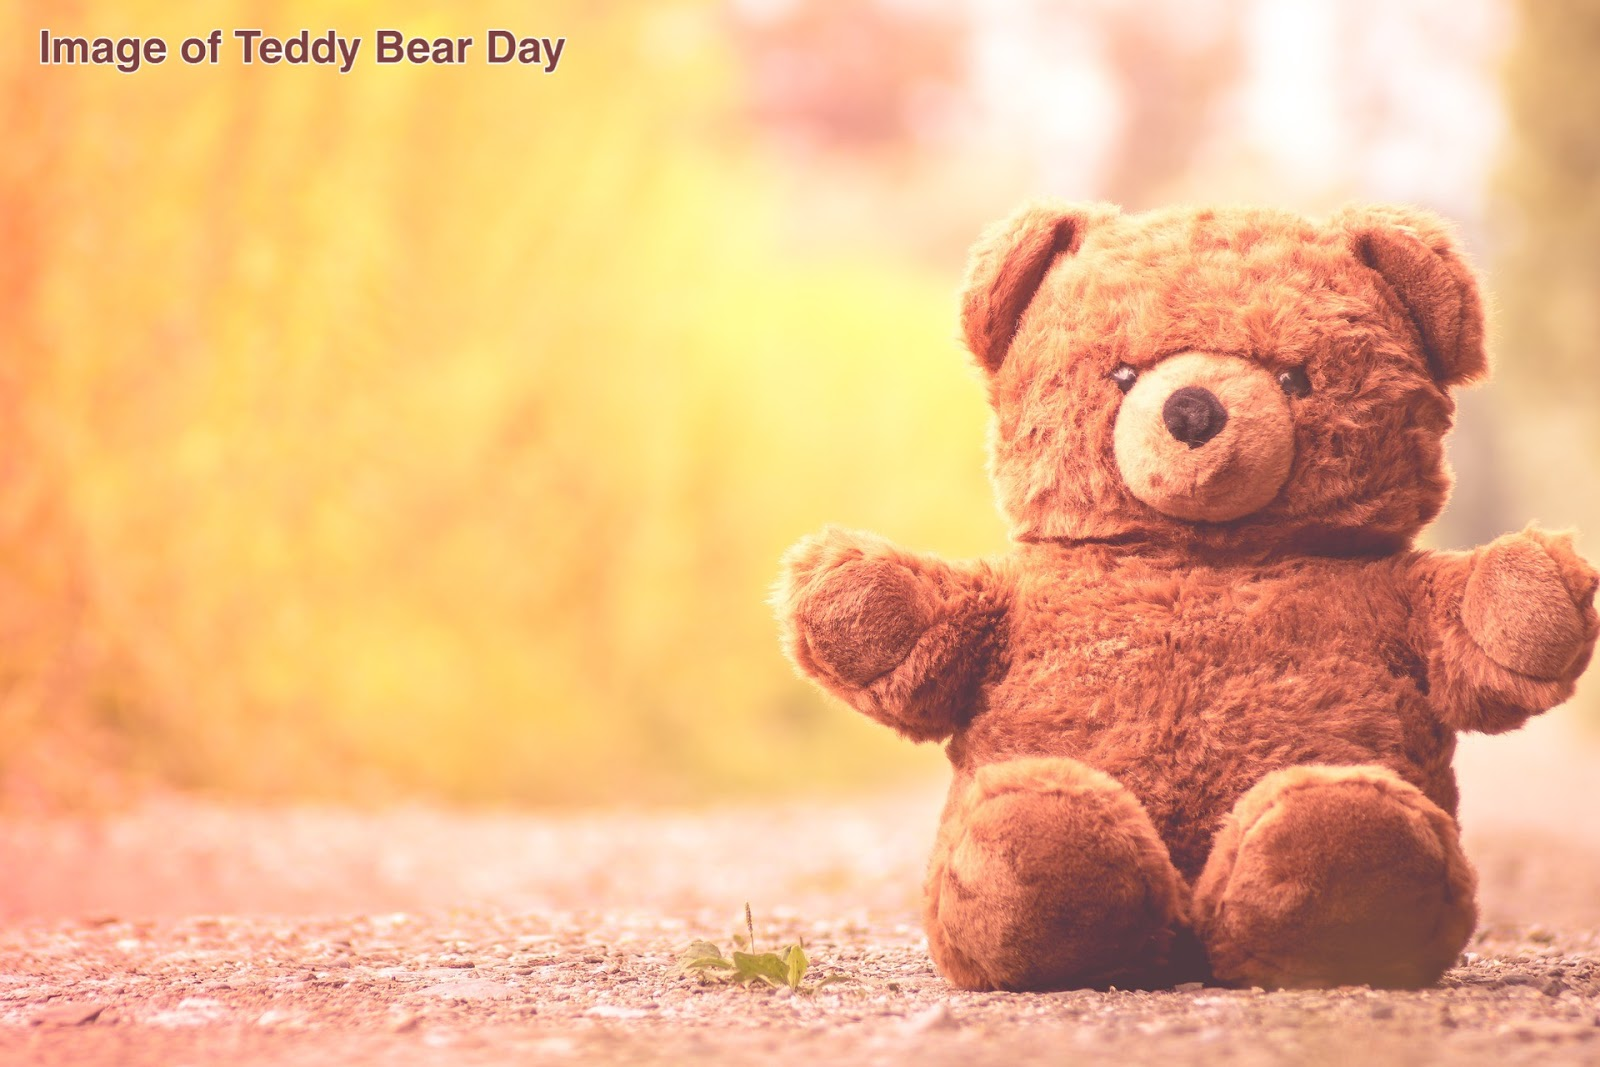 Image of Teddy Bear Day, Teddy Bear Day, Teddy Bear picture